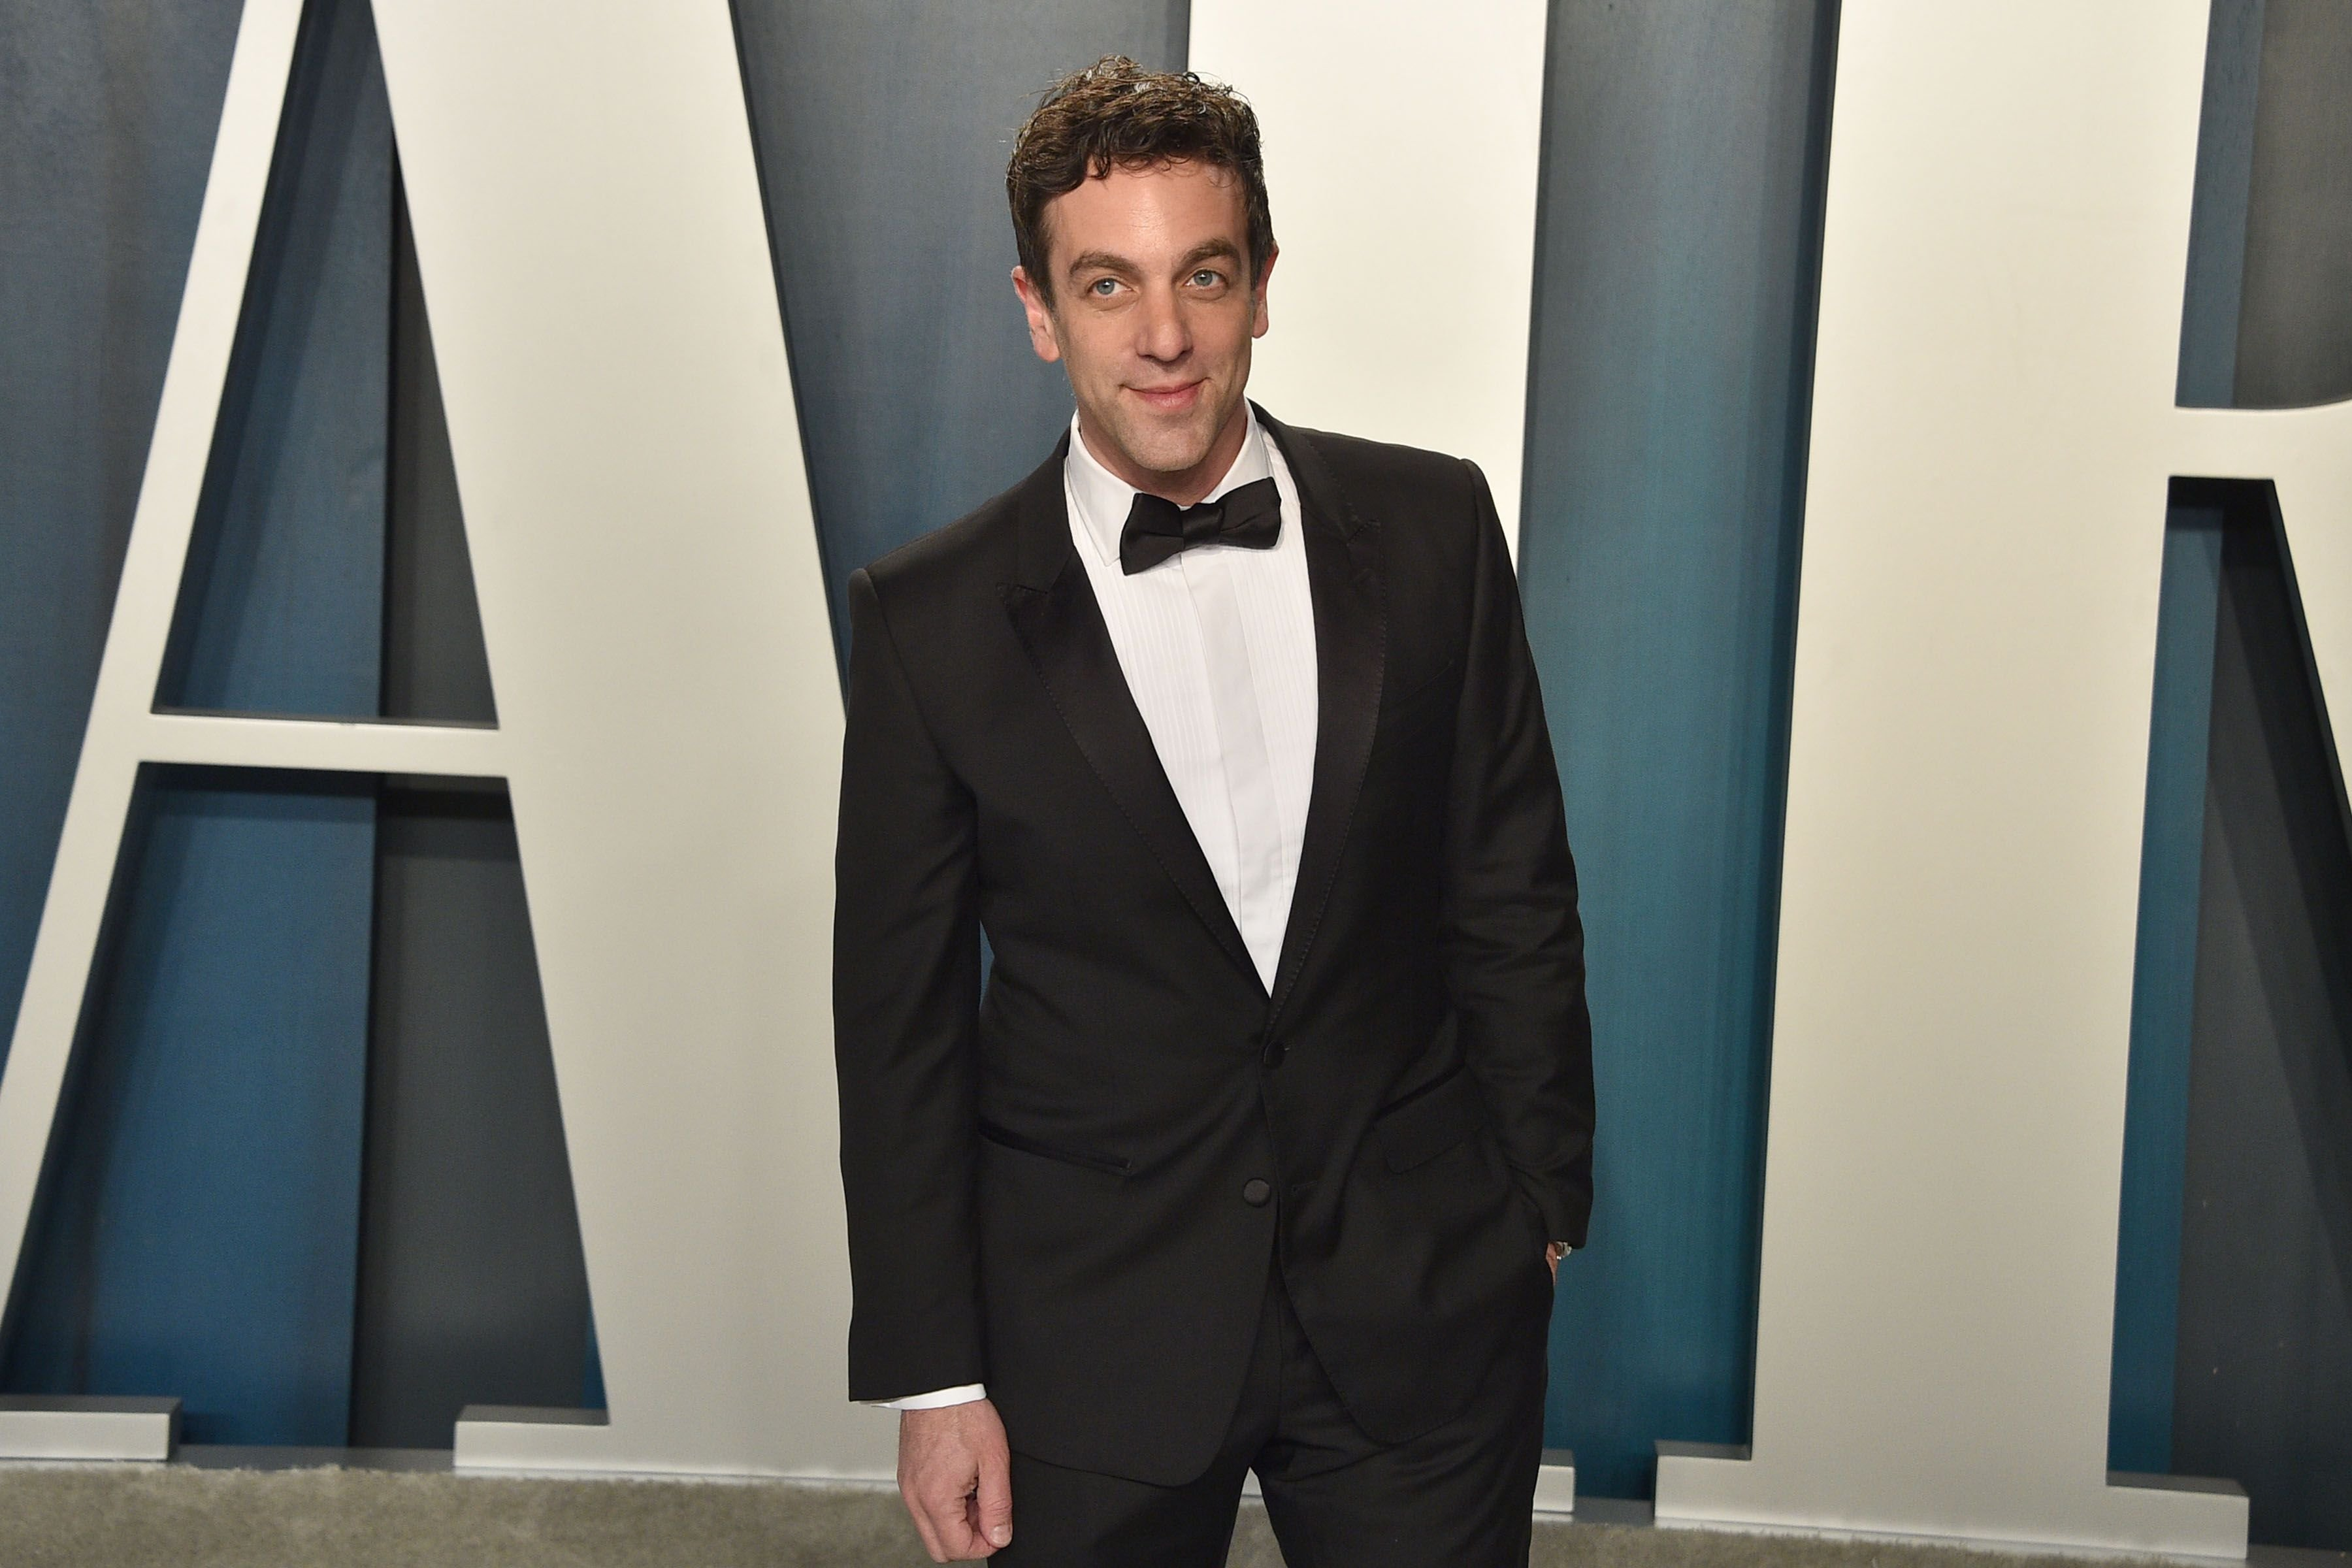 Mindy Kaling was in an on-again, off-again relationship with B.J. Novak / Getty Images